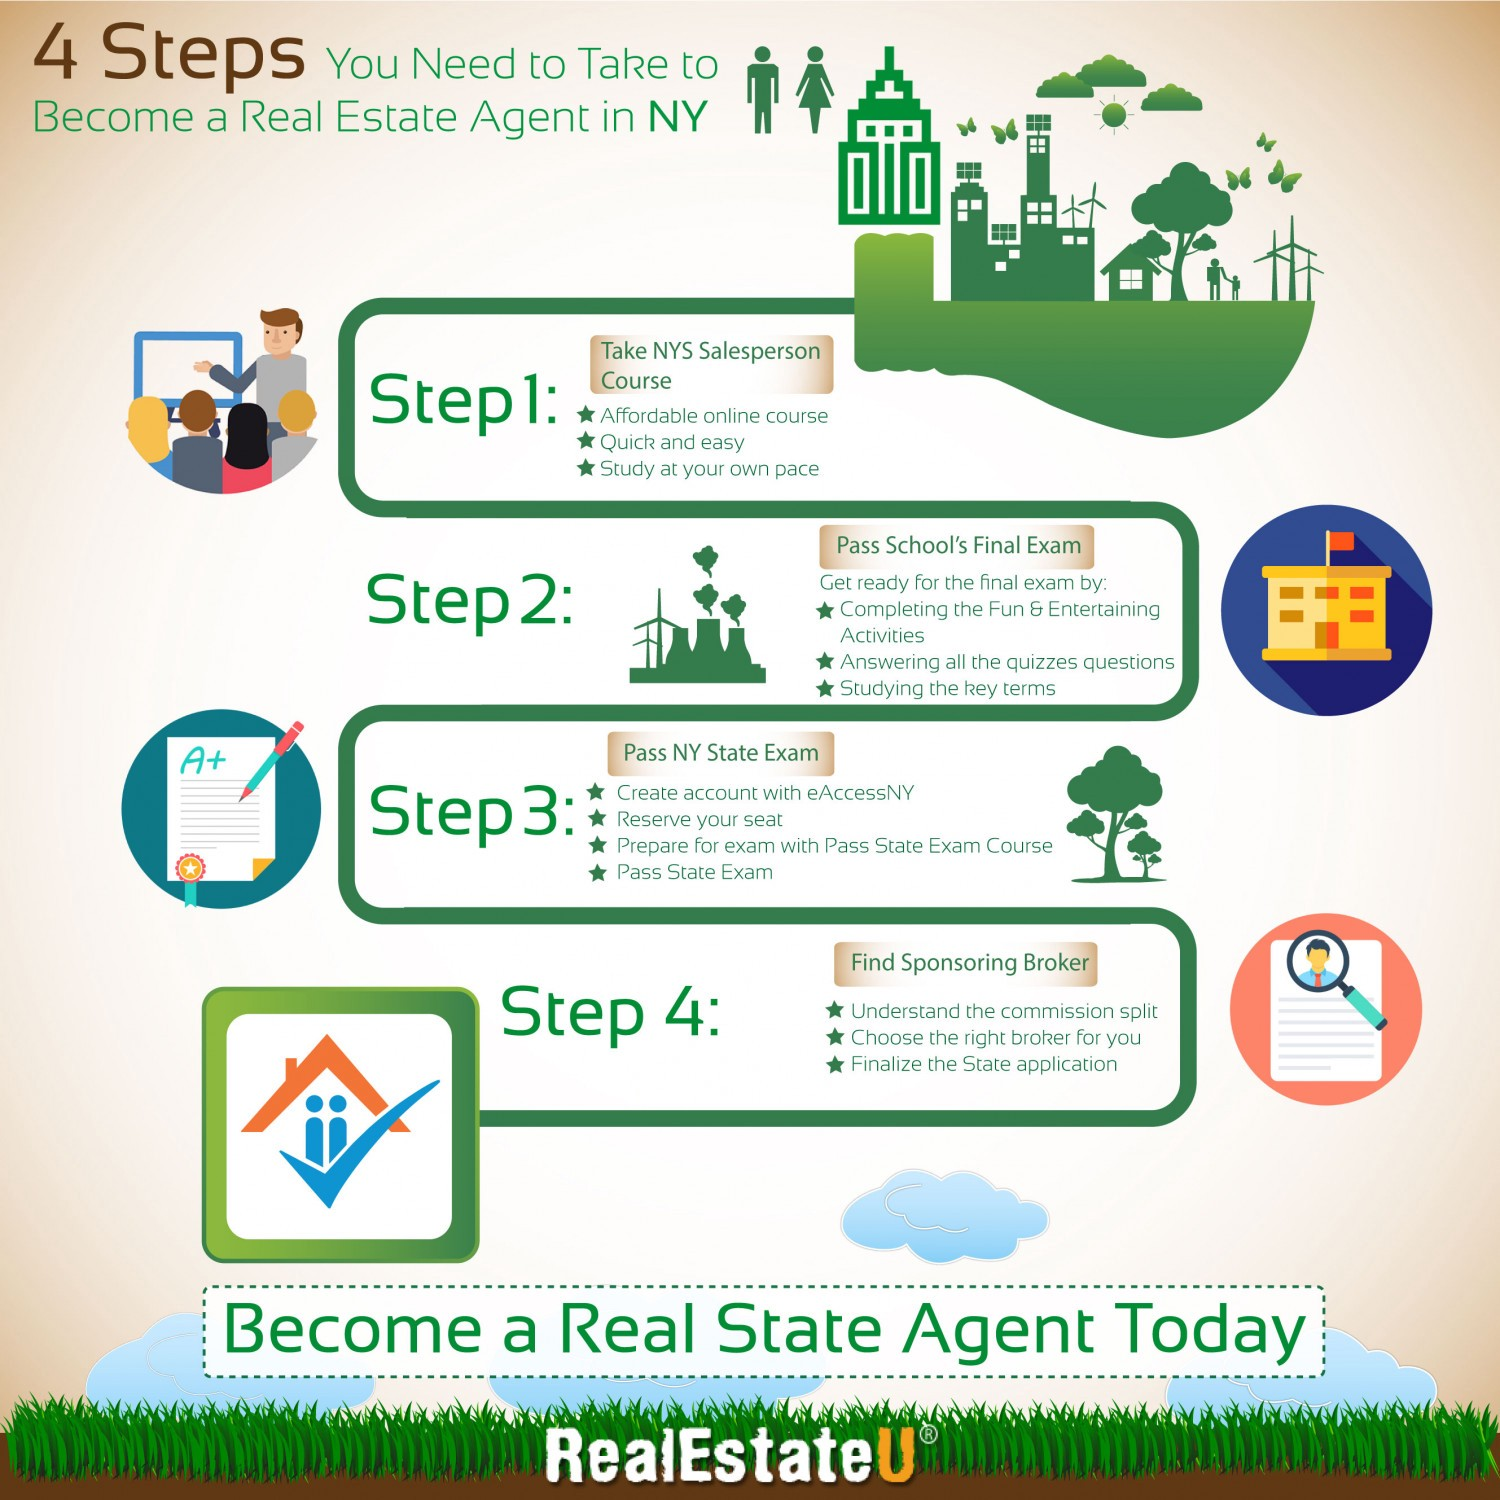 Become a Real Estate Agent - imocontent - Medium